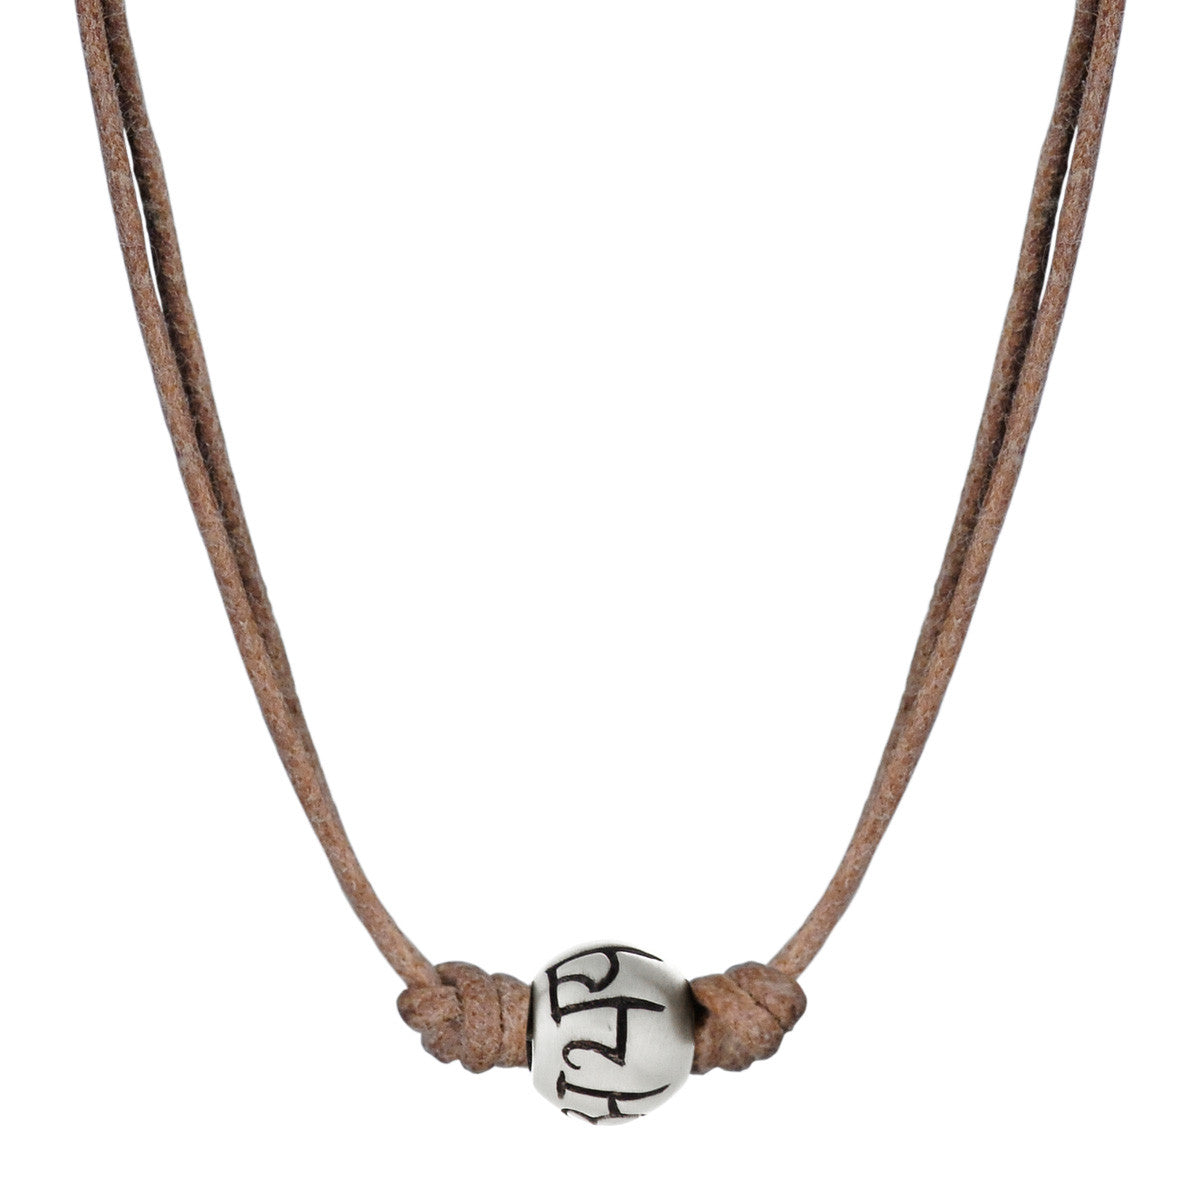 Men's Sterling Silver 'Fearlessness' Bead Necklace on Natural Cord